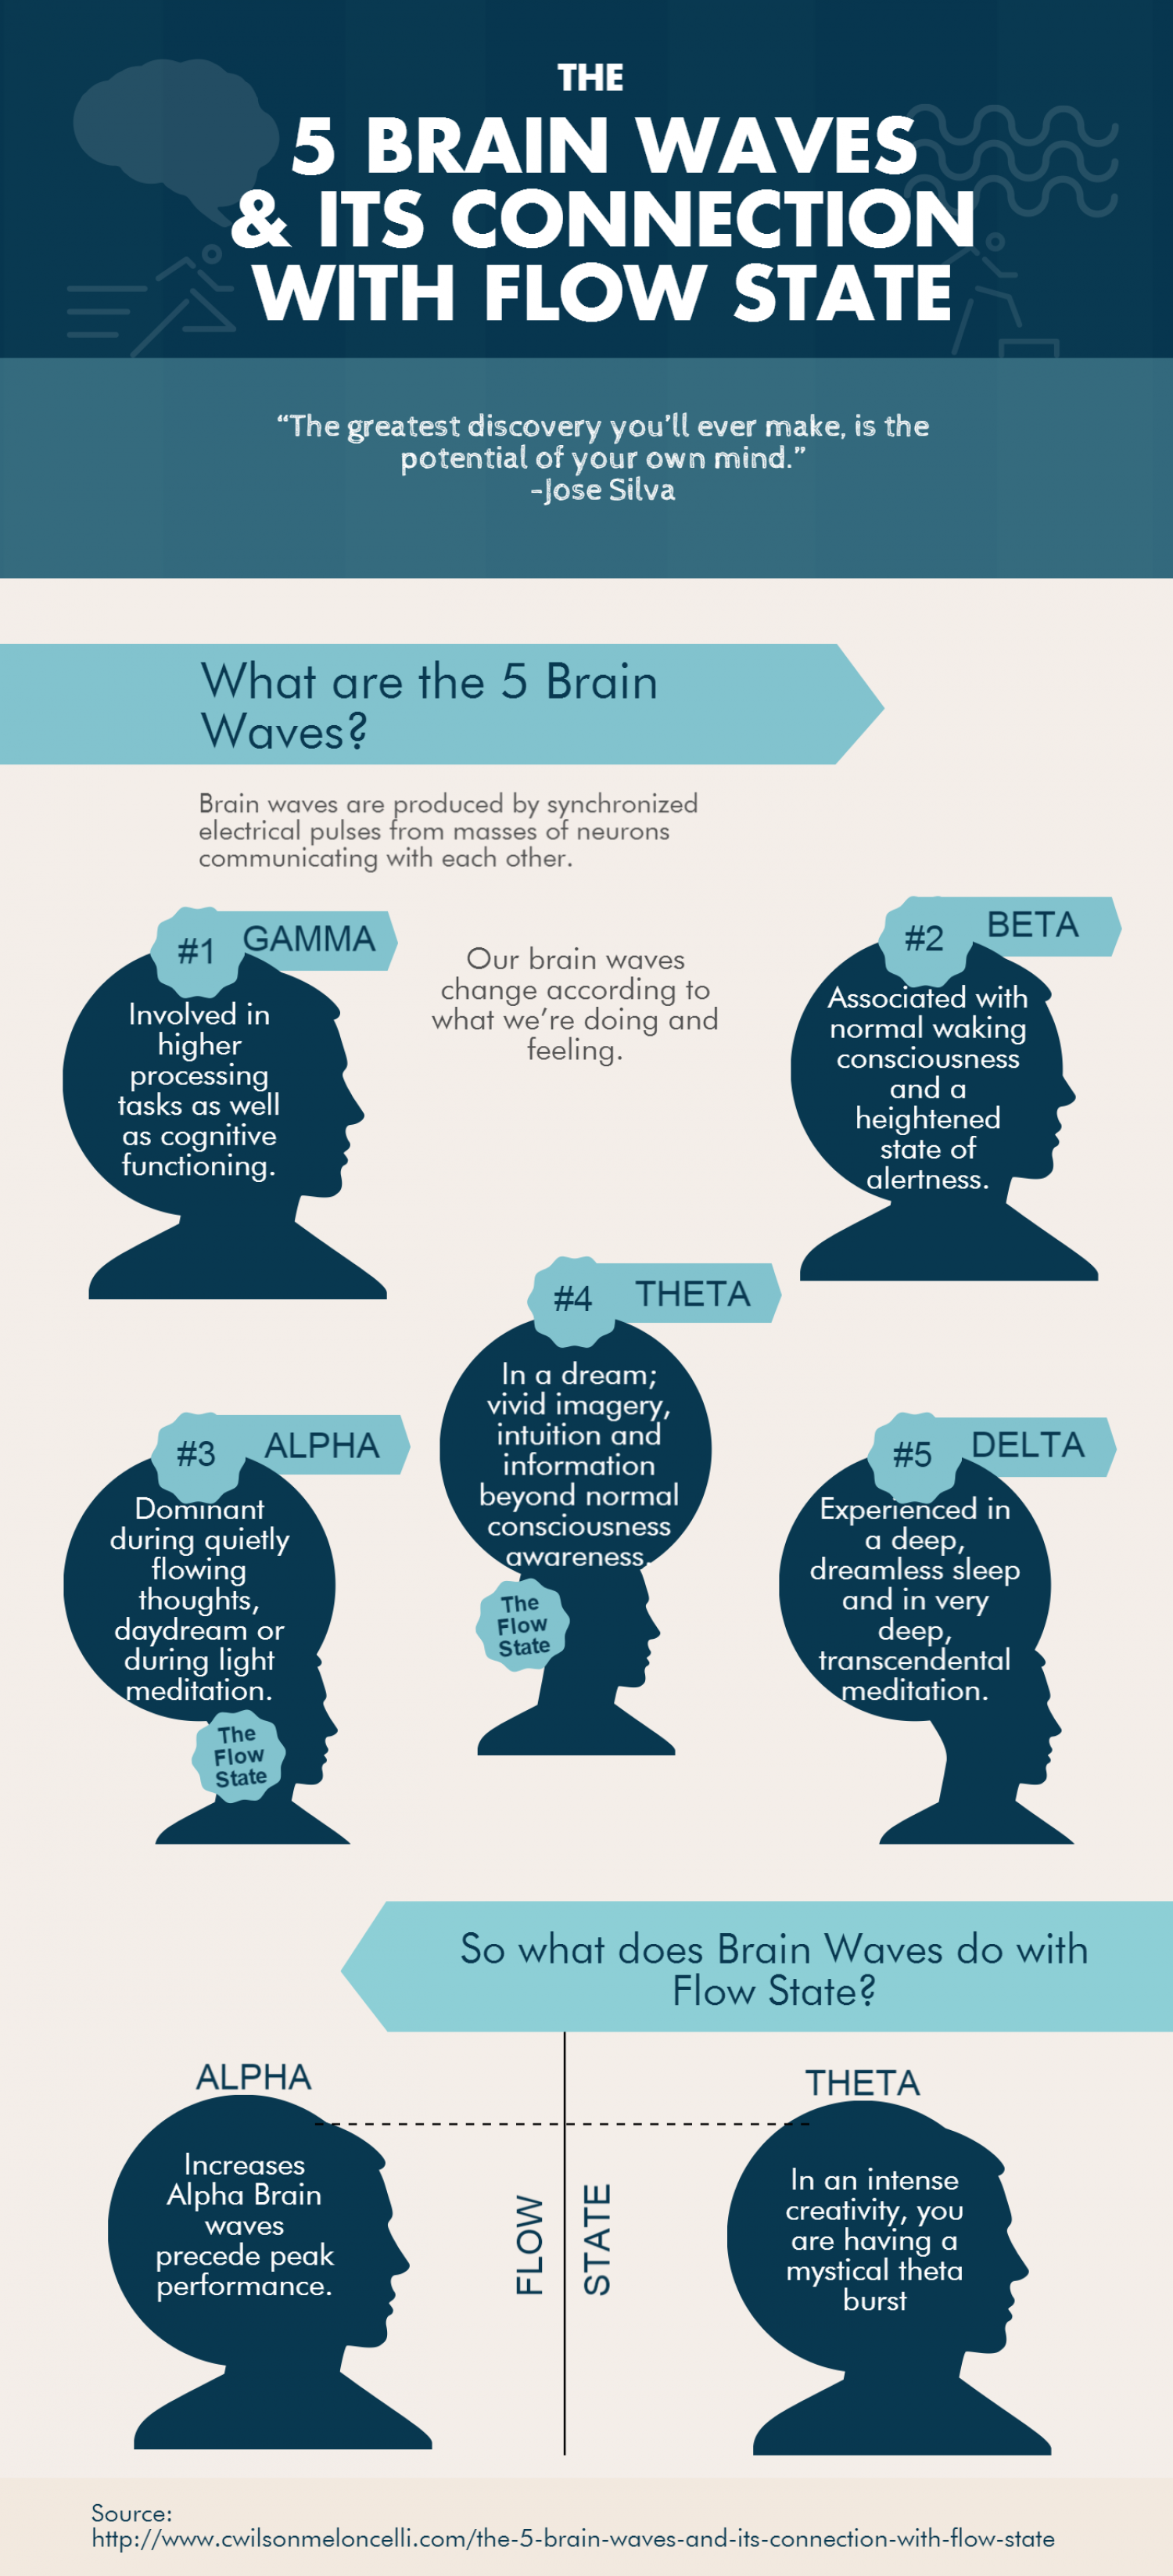 Essay On Conformity The  Brain Waves And Its Connection With Flow State Infographic Miss Julie Essay also Essay About Civil Rights The  Brain Waves And Its Connection With Flow State Infographic  Examples Of Good Hooks For Persuasive Essays